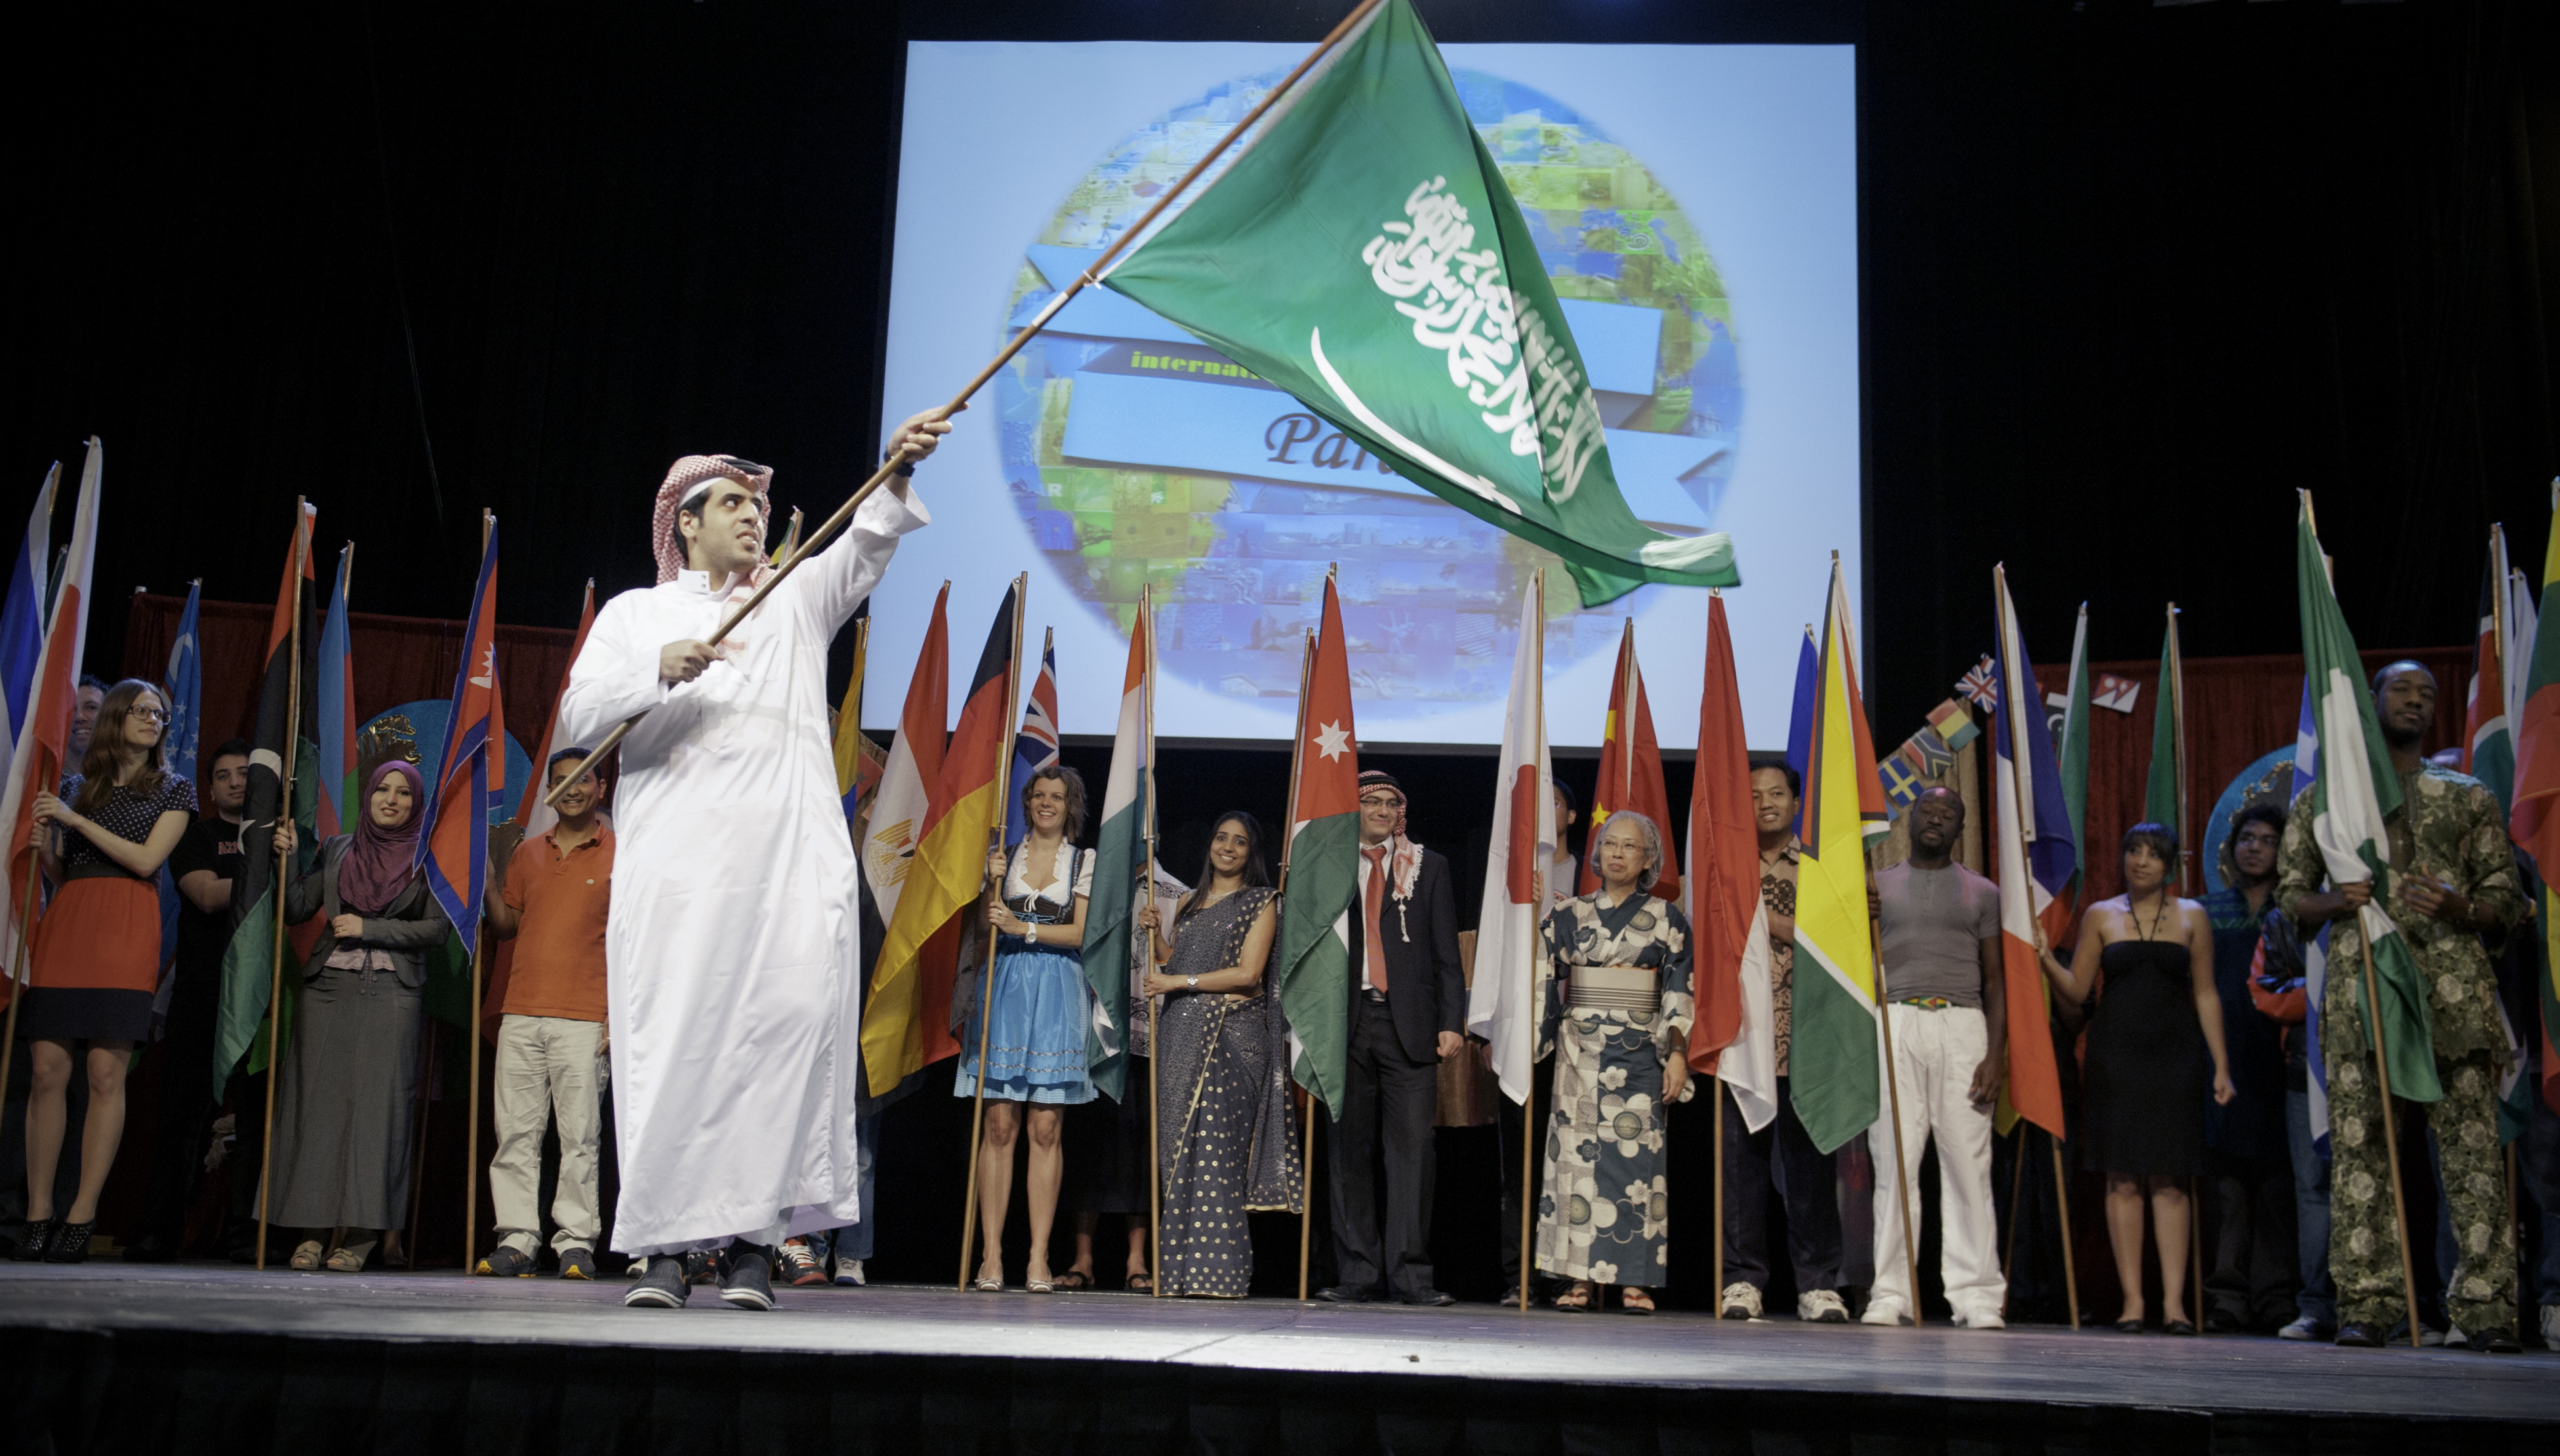 A student from Saudi Arabia waves the flag from his homeland.